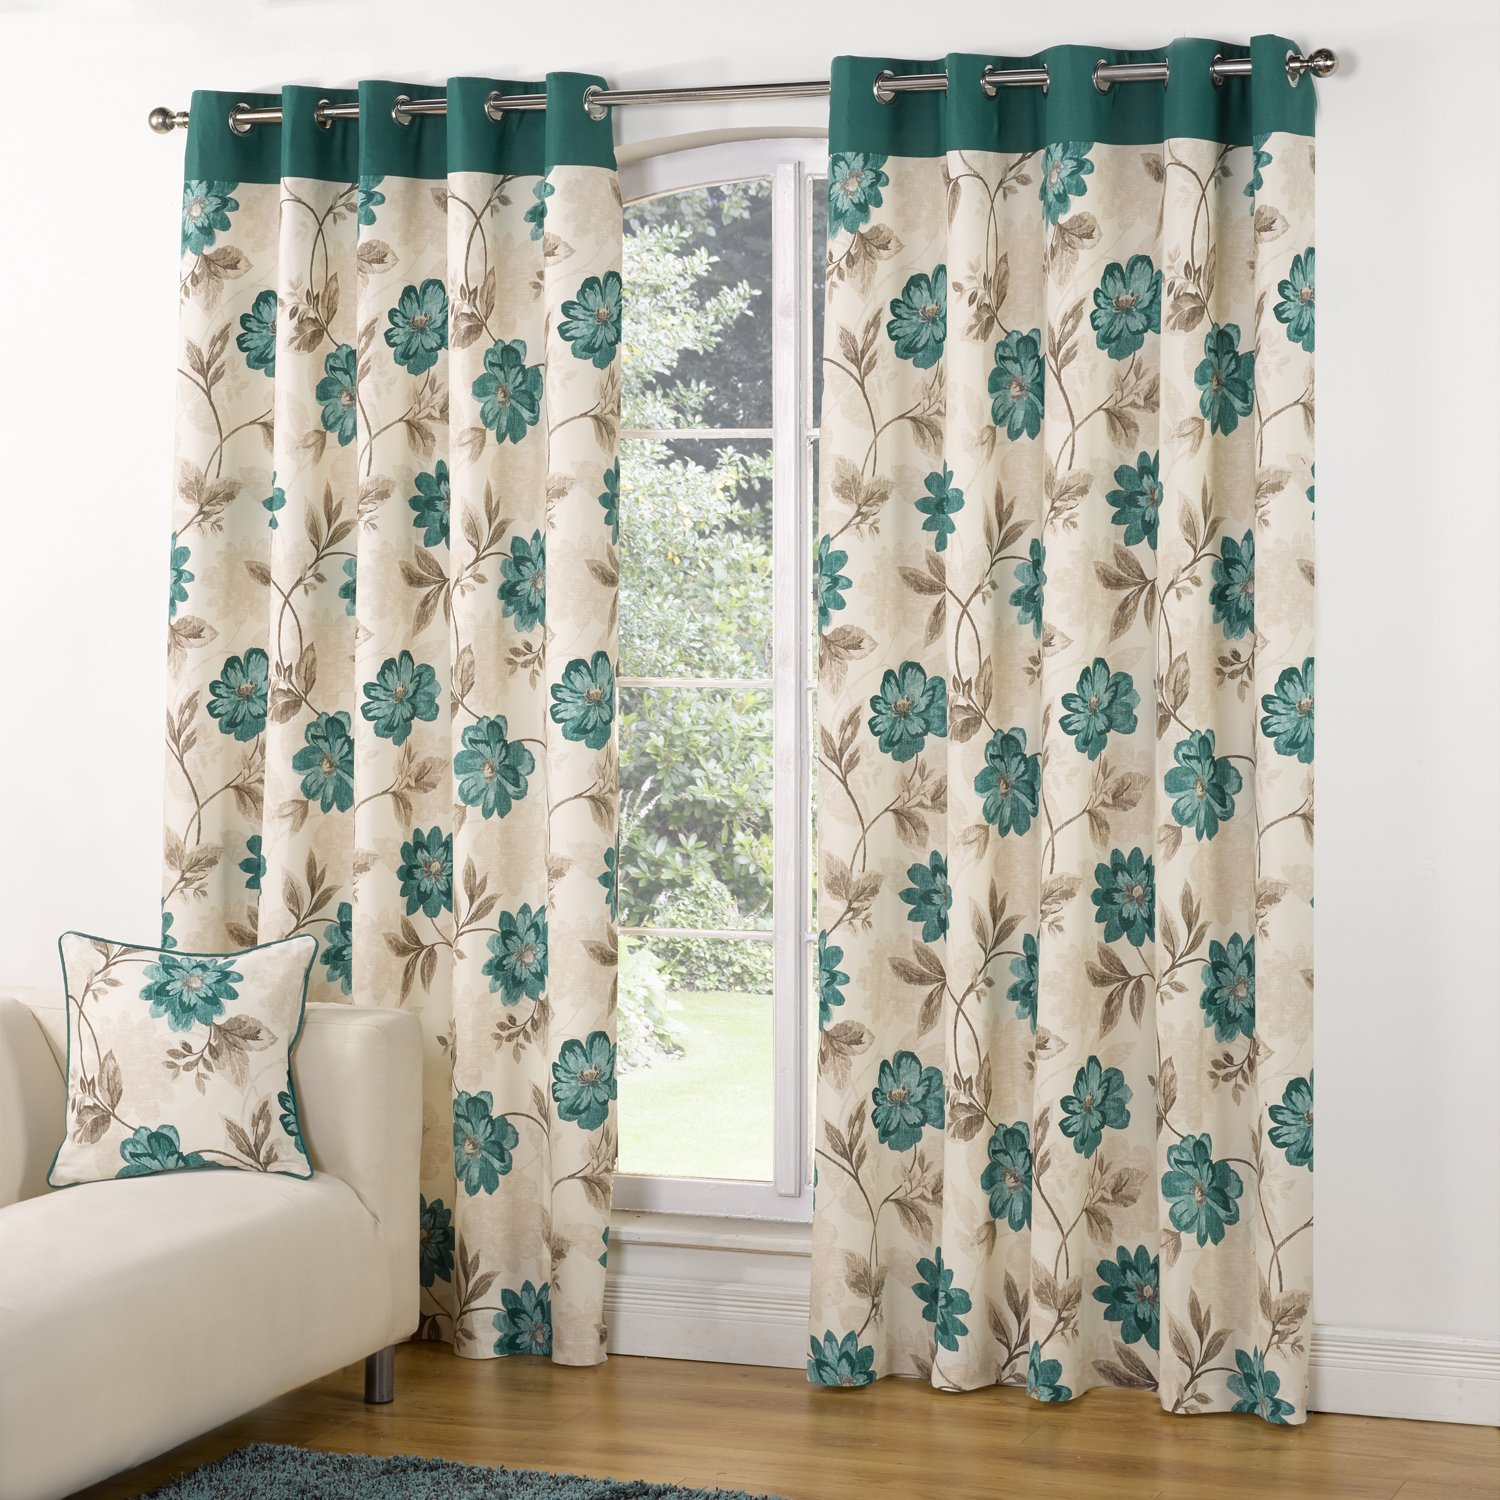 ... GREEN FLORAL TRAIL DESIGN RING EYELET LINED READYMADE CURTAINS | eBay